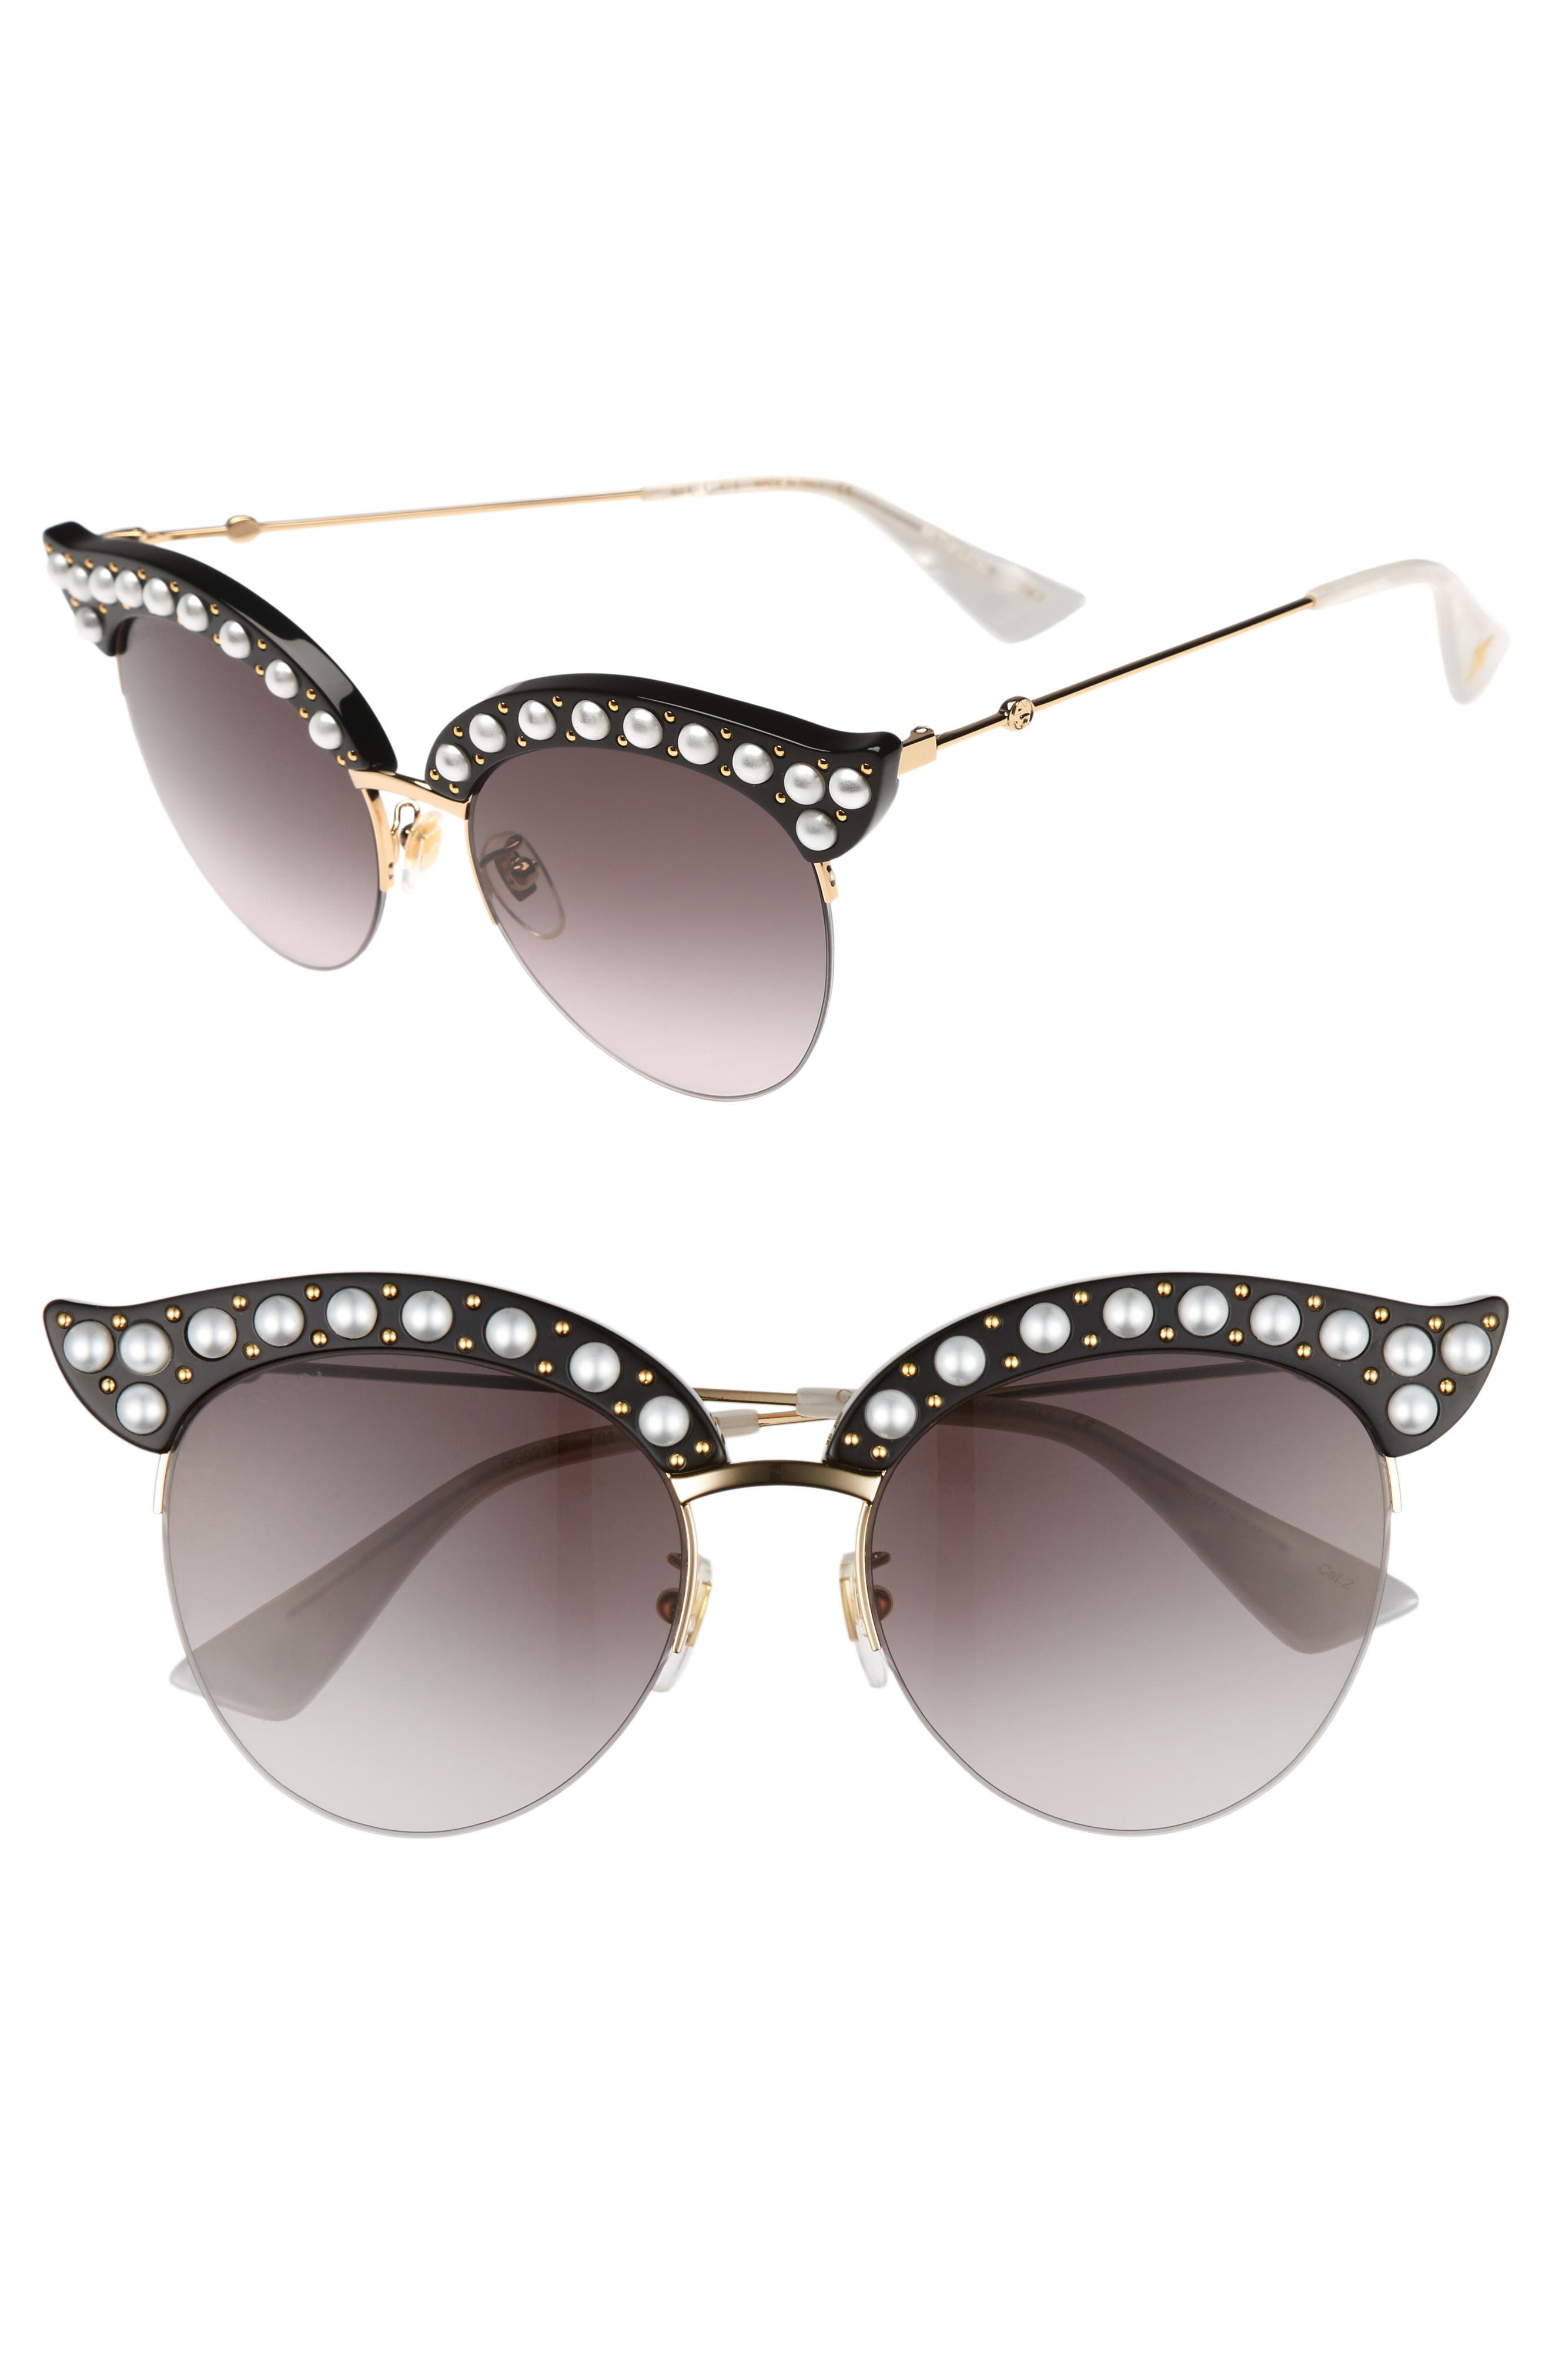 53mm Embellished Cat Eye Sunglasses,                             Main thumbnail 1, color,                             BLACK